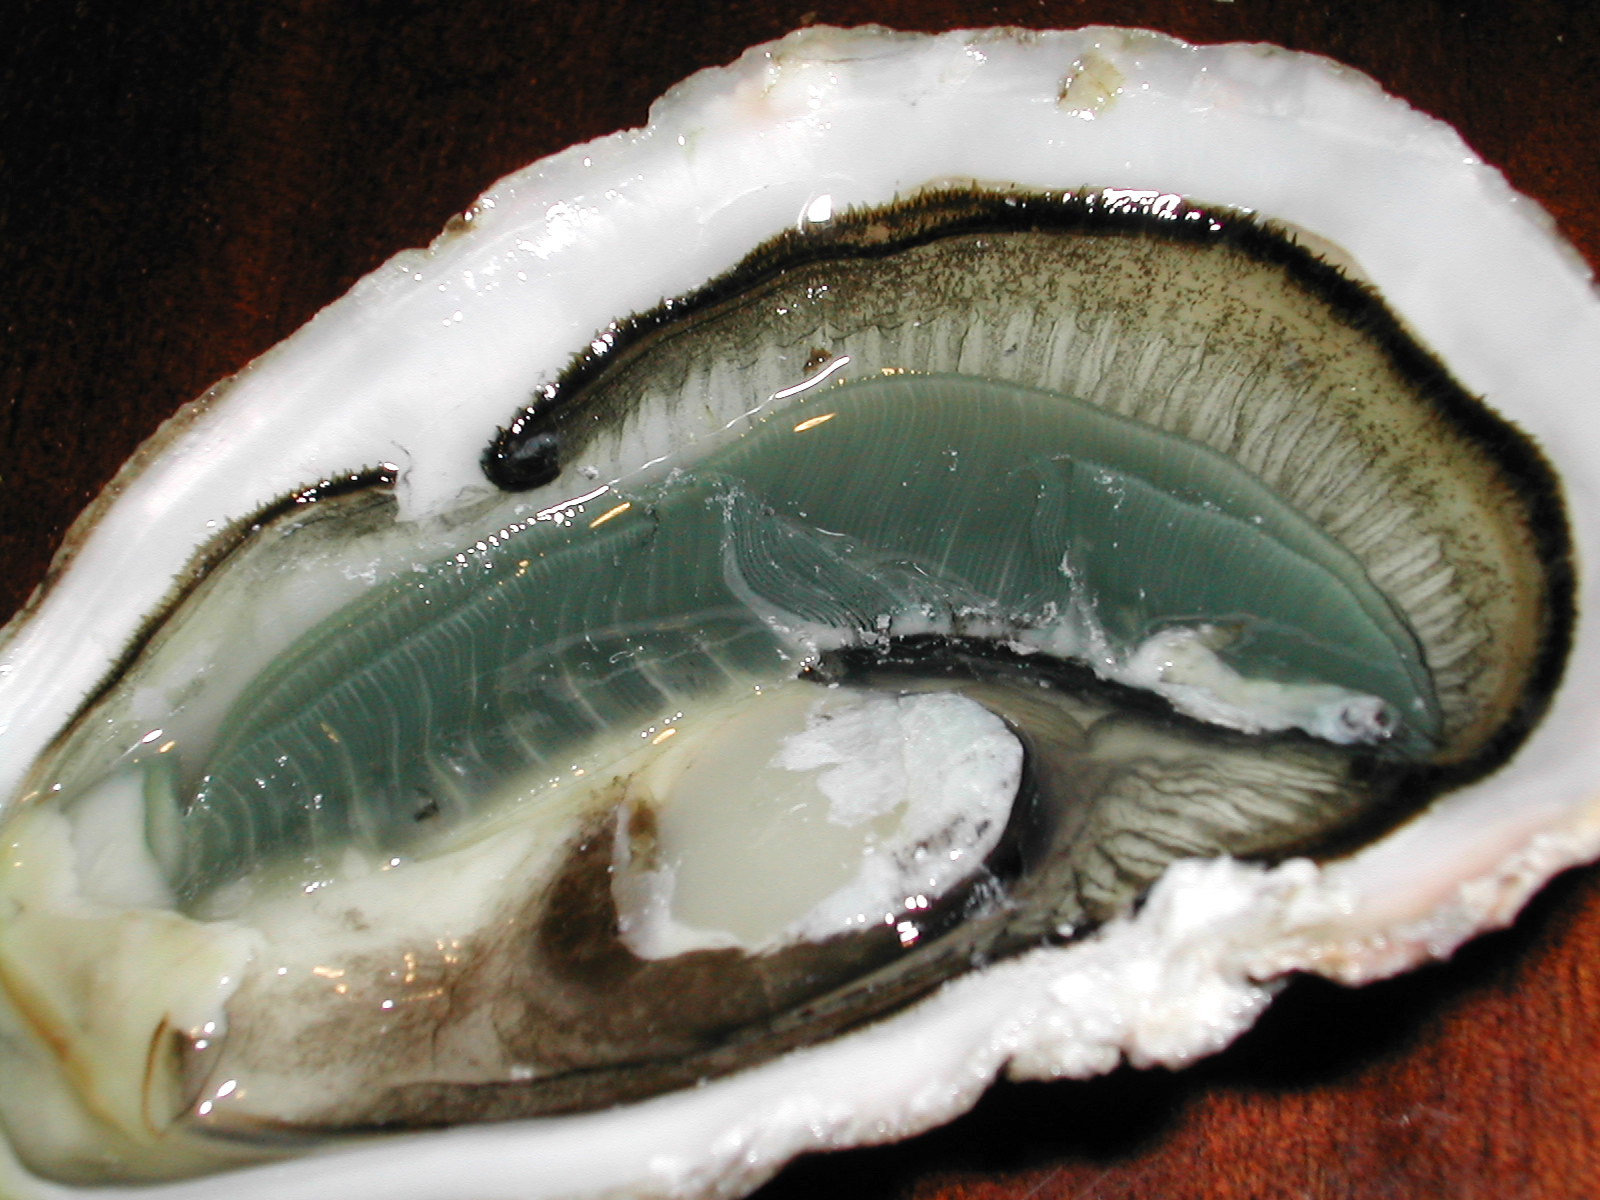 File:Oyster(L).jpg - Wikimedia Commons